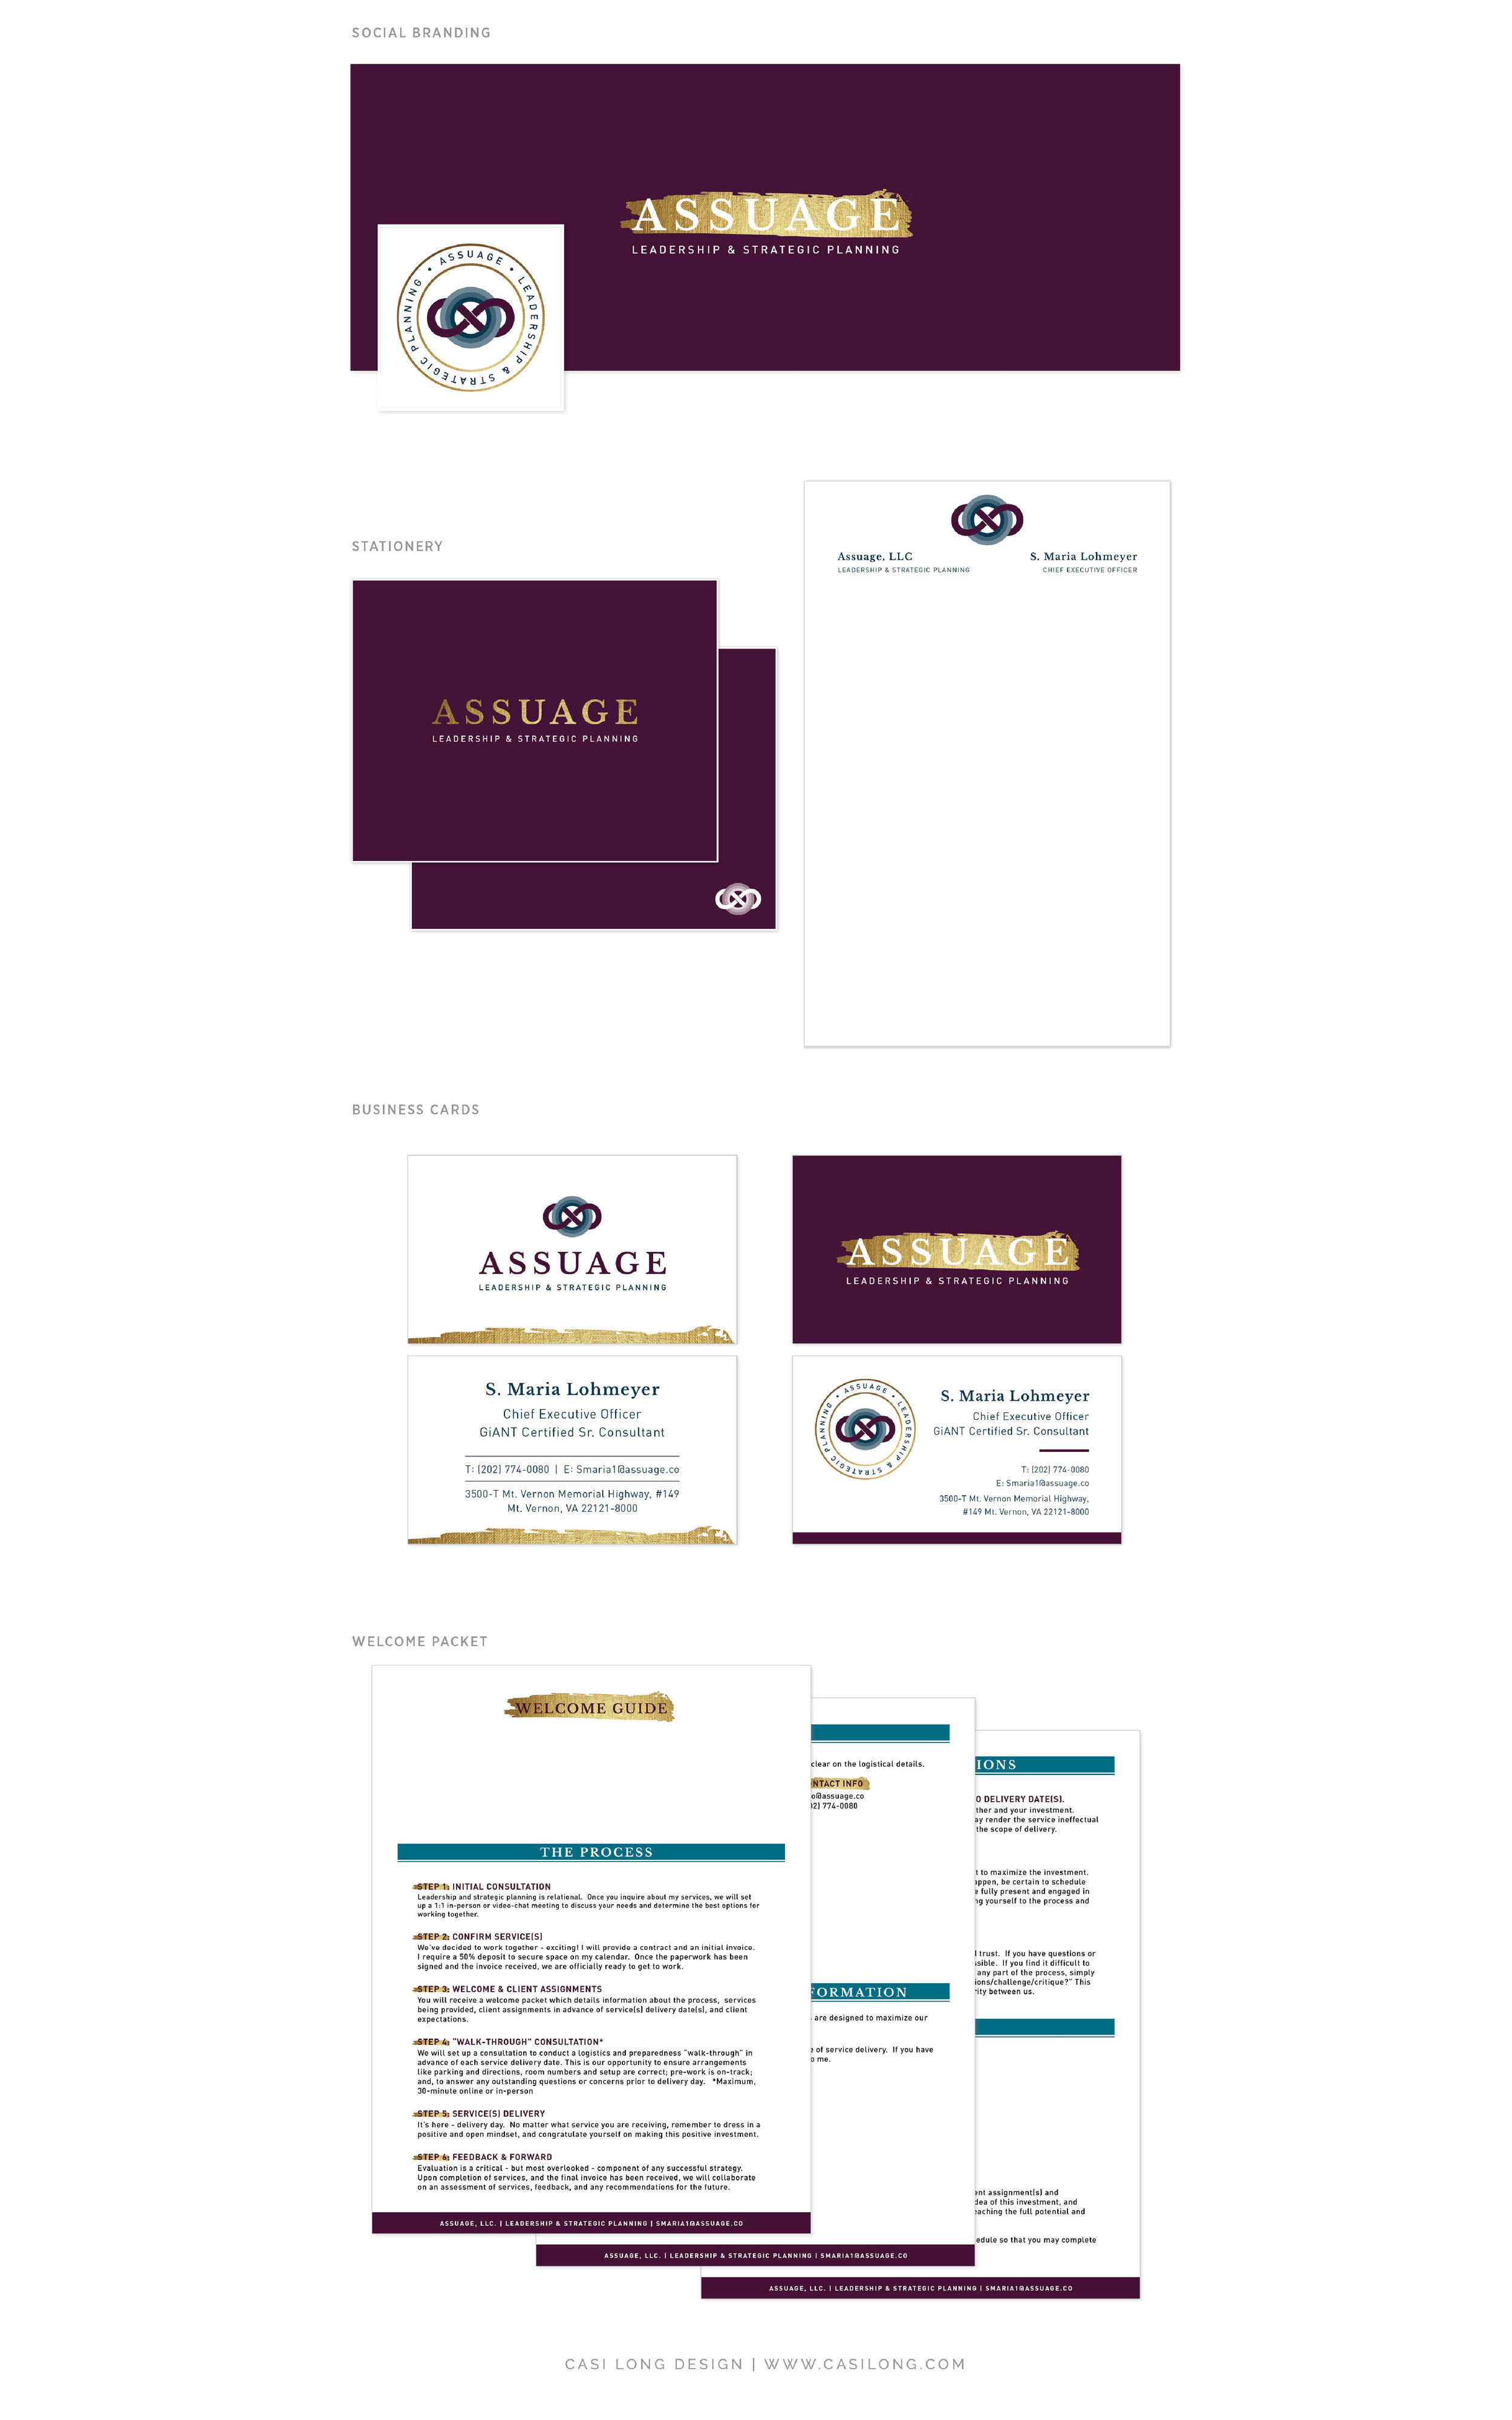 Assuage Branding by Casi Long Design | casilong.com 4.jpg